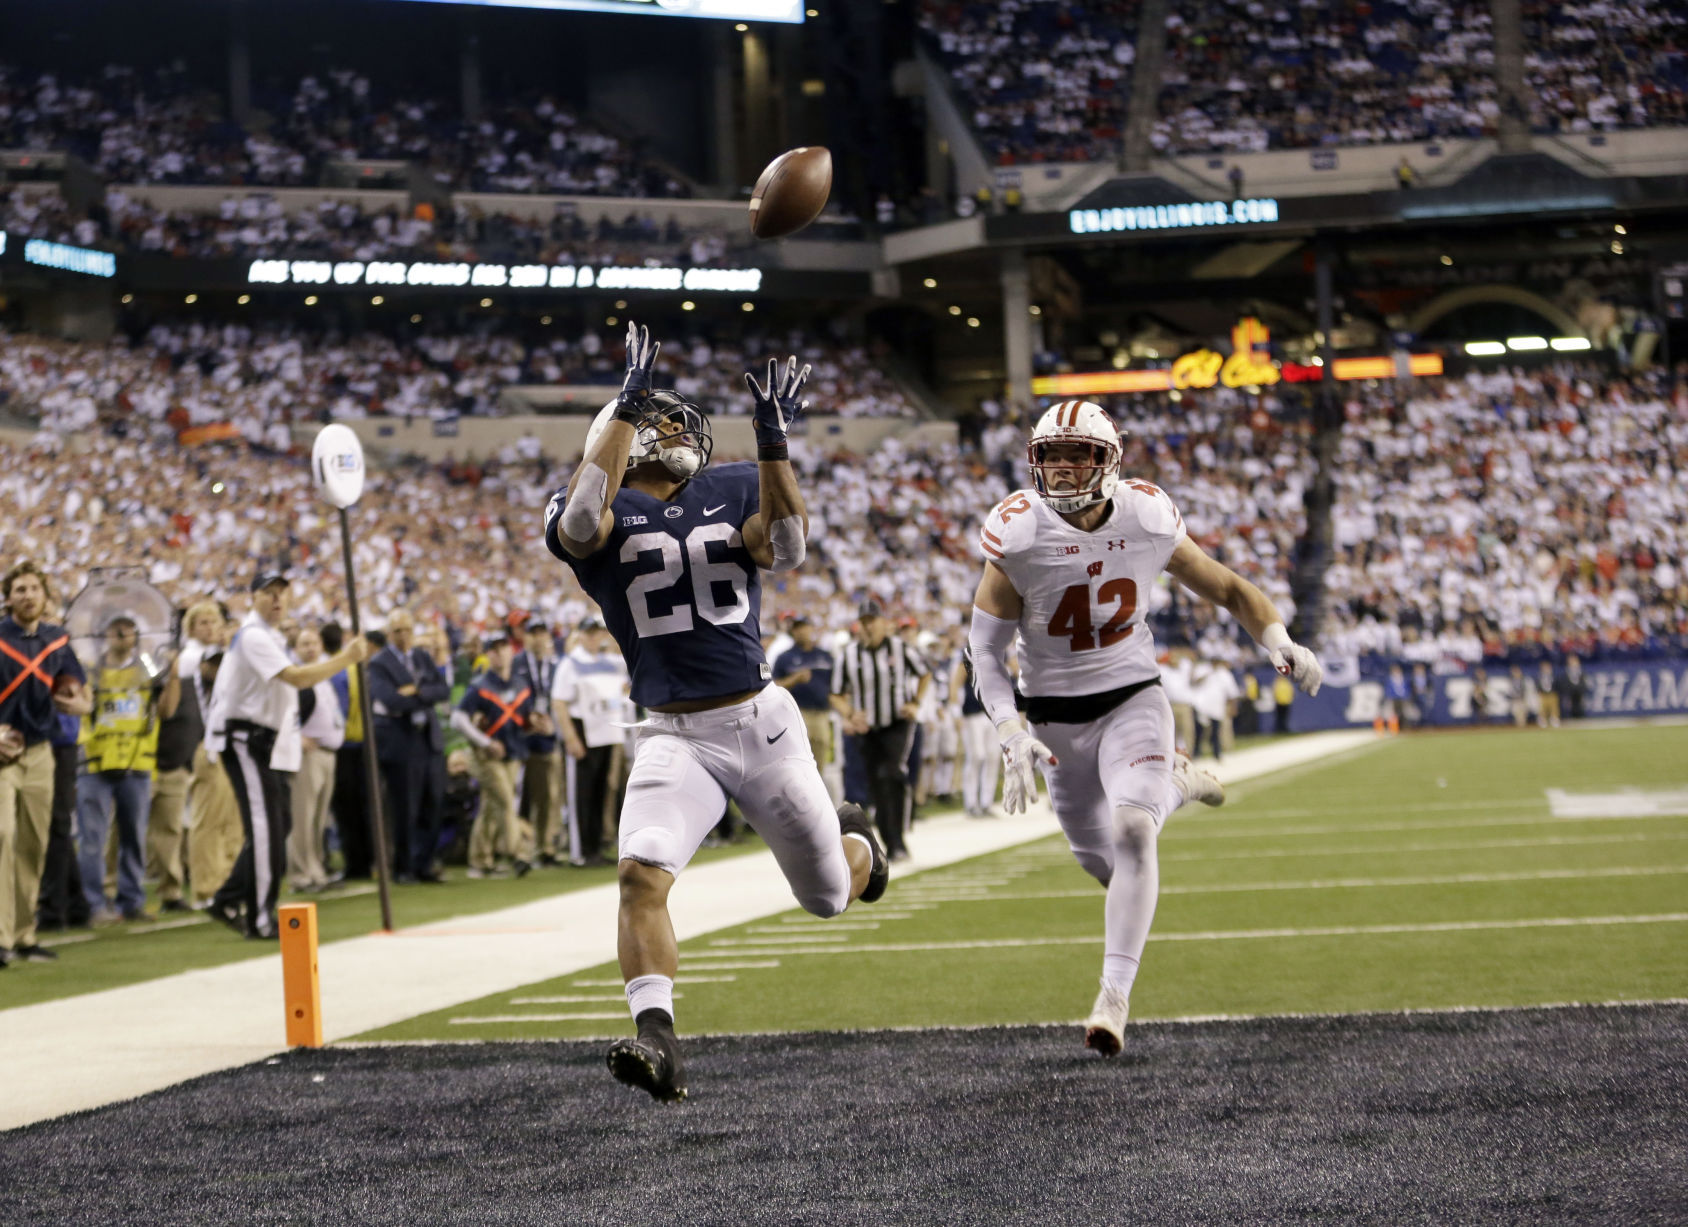 Penn State kicker Joey Julius no longer with team